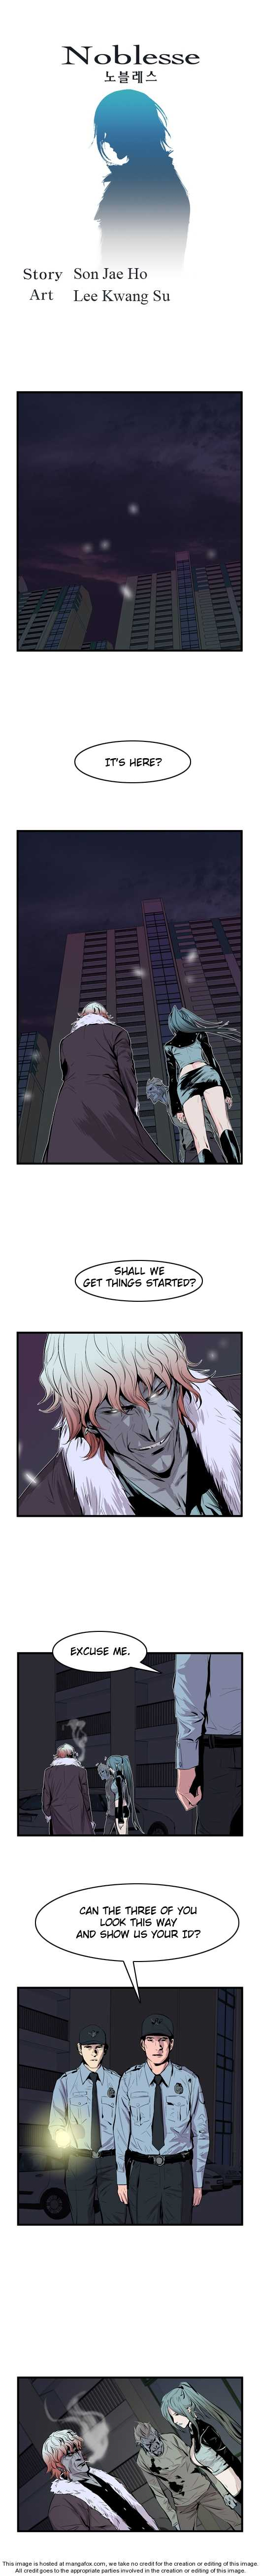 Noblesse 43 Page 1